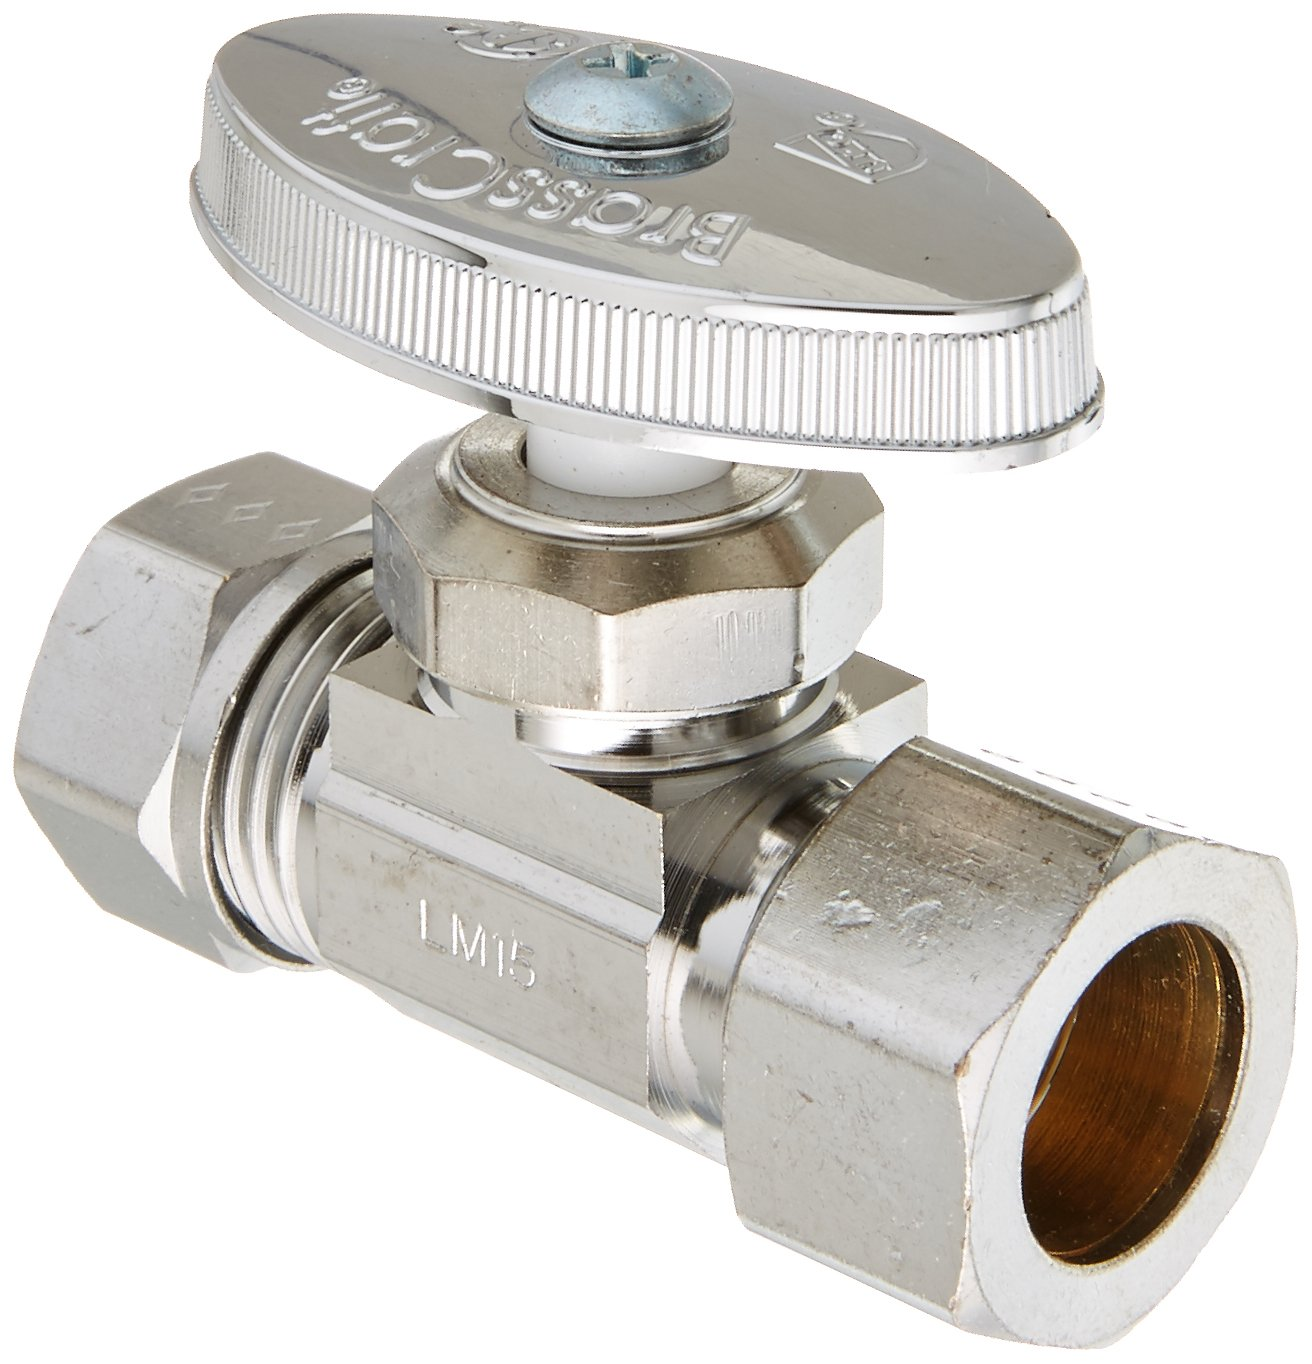 BrassCraft O3345X C1 1/2'' Nominal Compression Inlet x 7/16'' and 1/2'' Slip Joint Outlet Multi-Turn Straight Valve